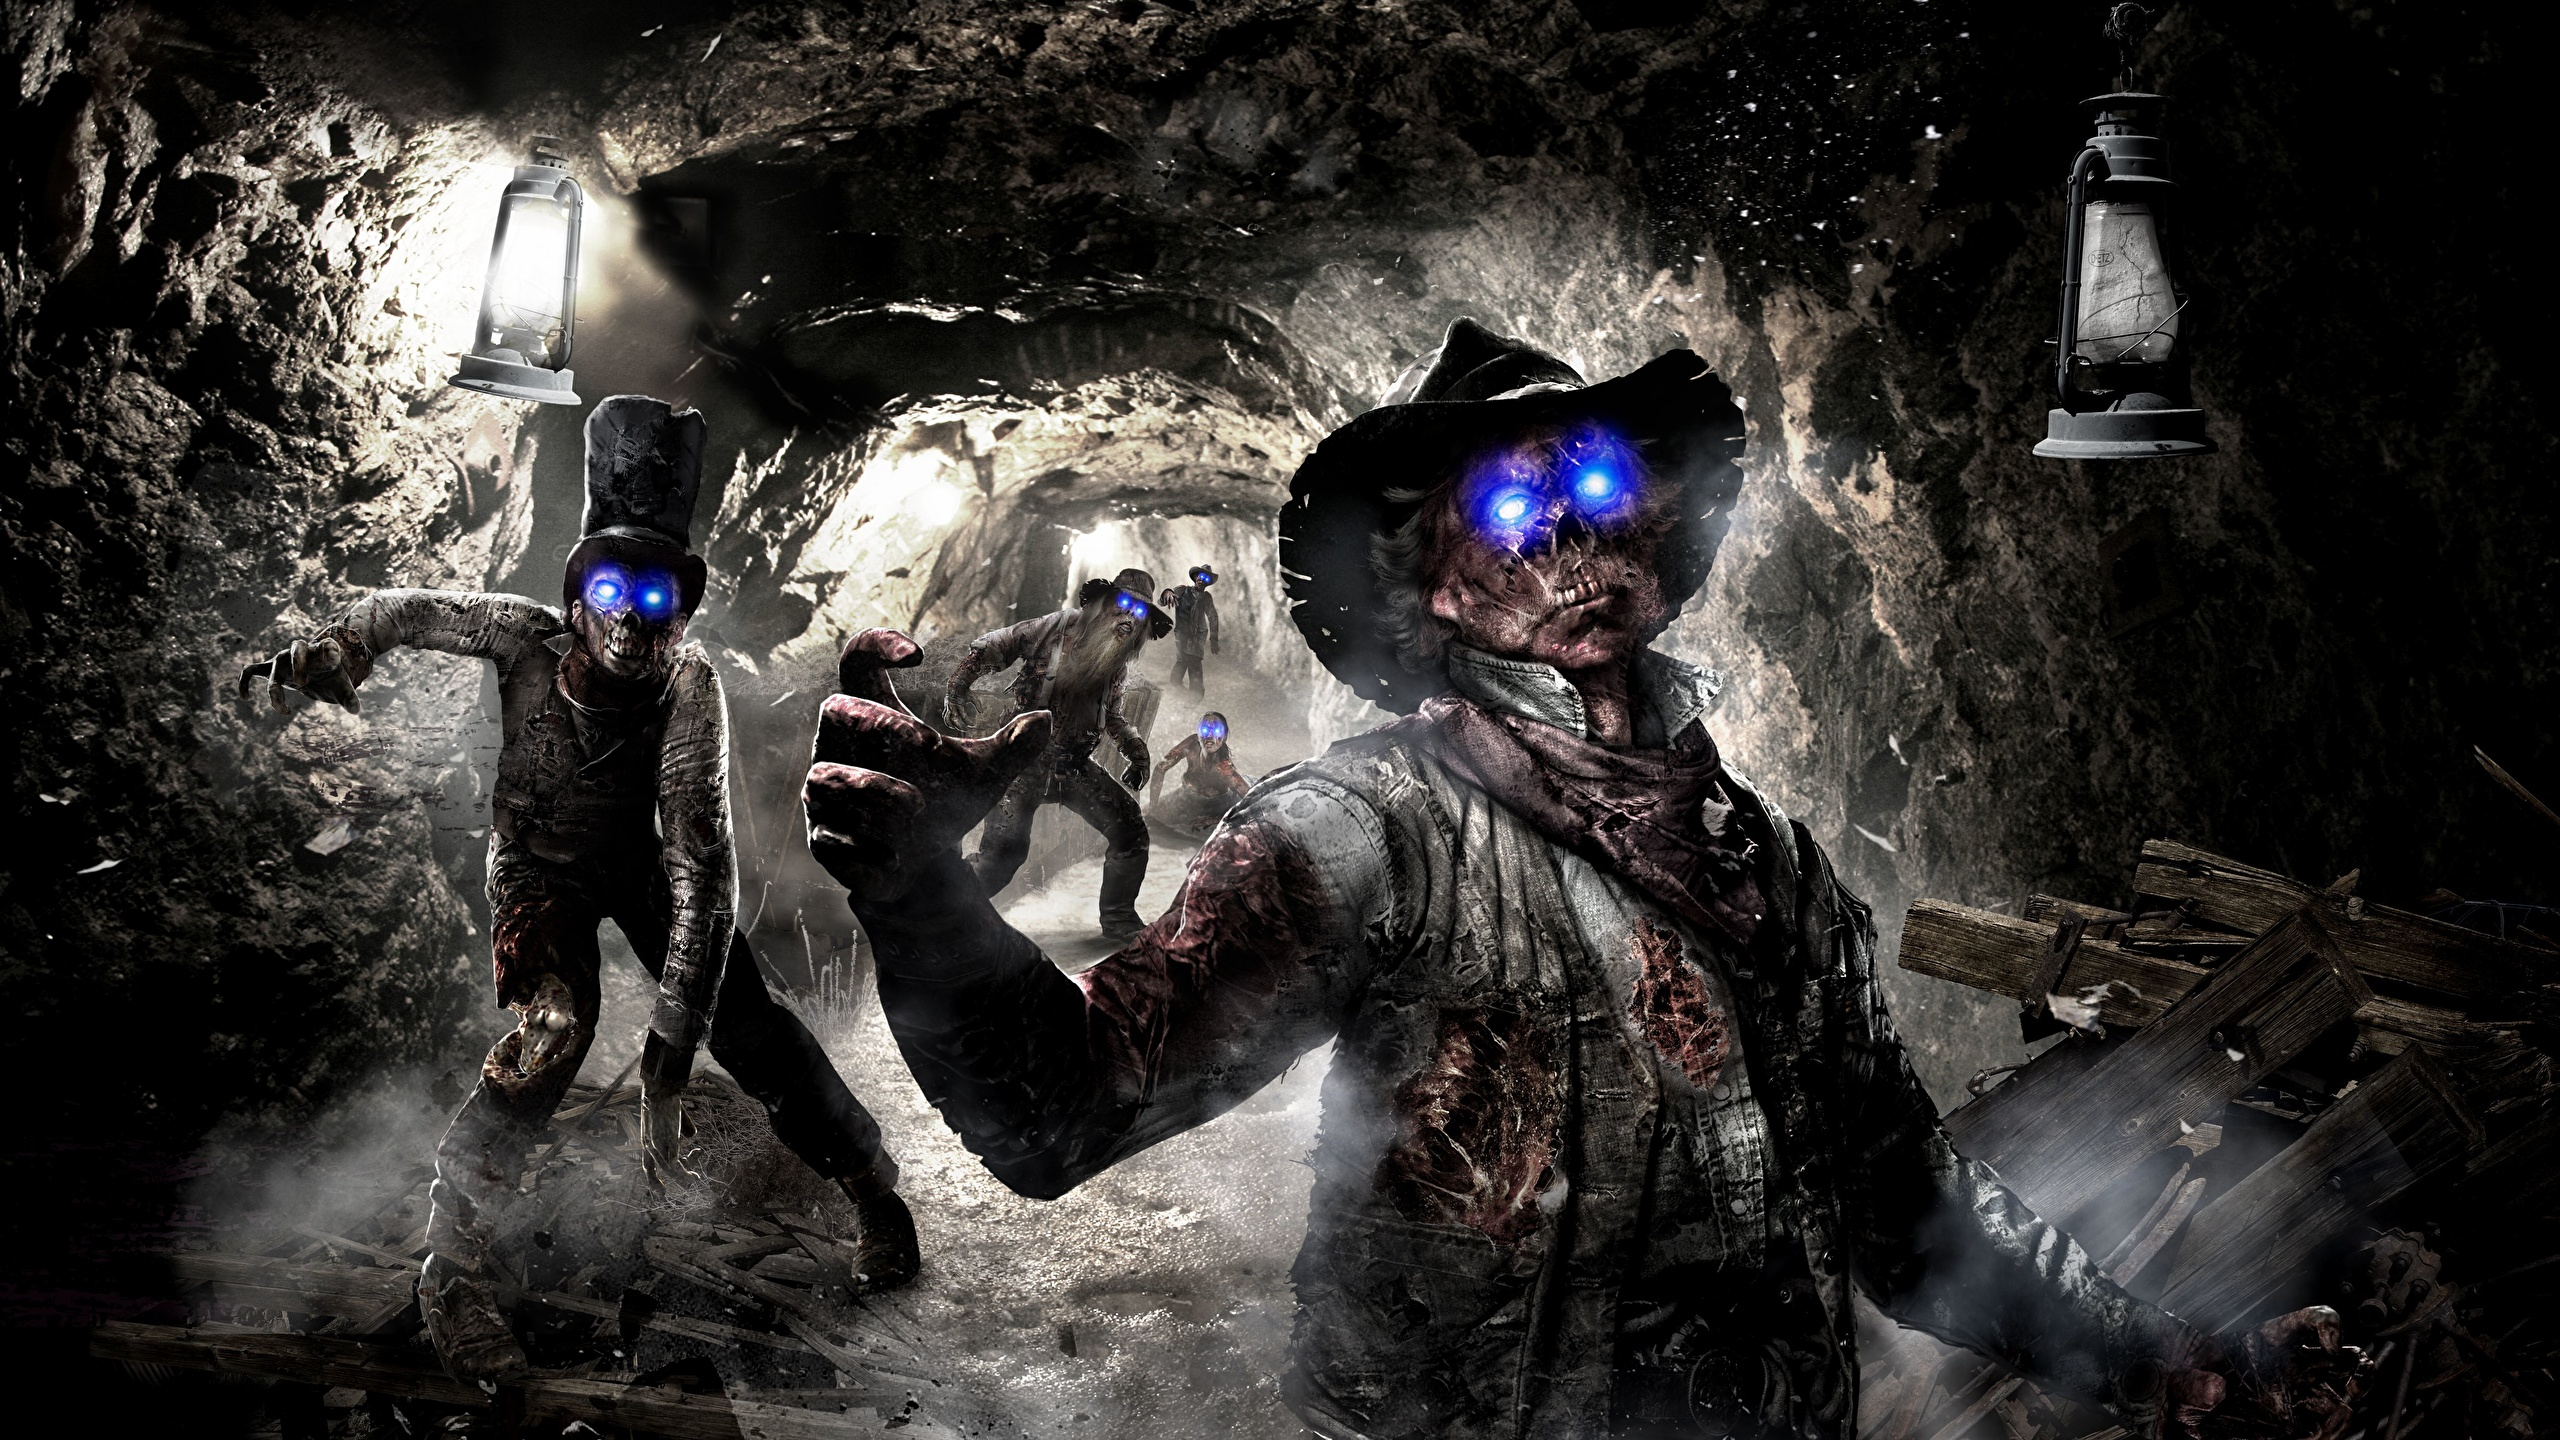 Wallpaper Call Of Duty Undead Black Ops 2 Hat Caves 3d 2560x1440